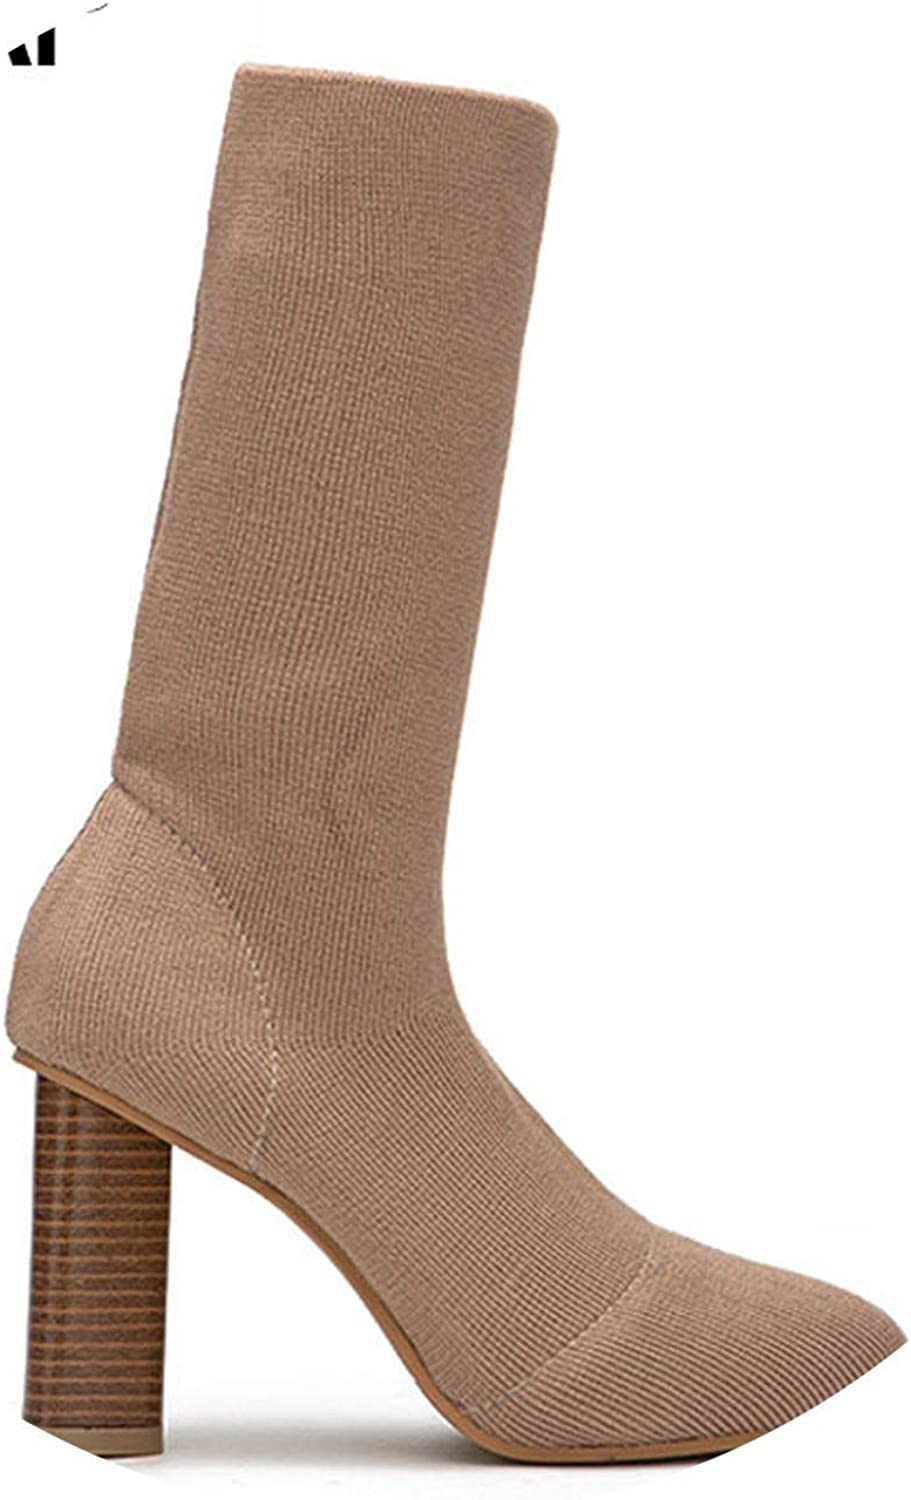 Nice Style Warm Winter Boots High Heels Slip-On Socks Boots Pointed Toe Ankle Knitting shoes 014C2577-4 Apricot 8.5